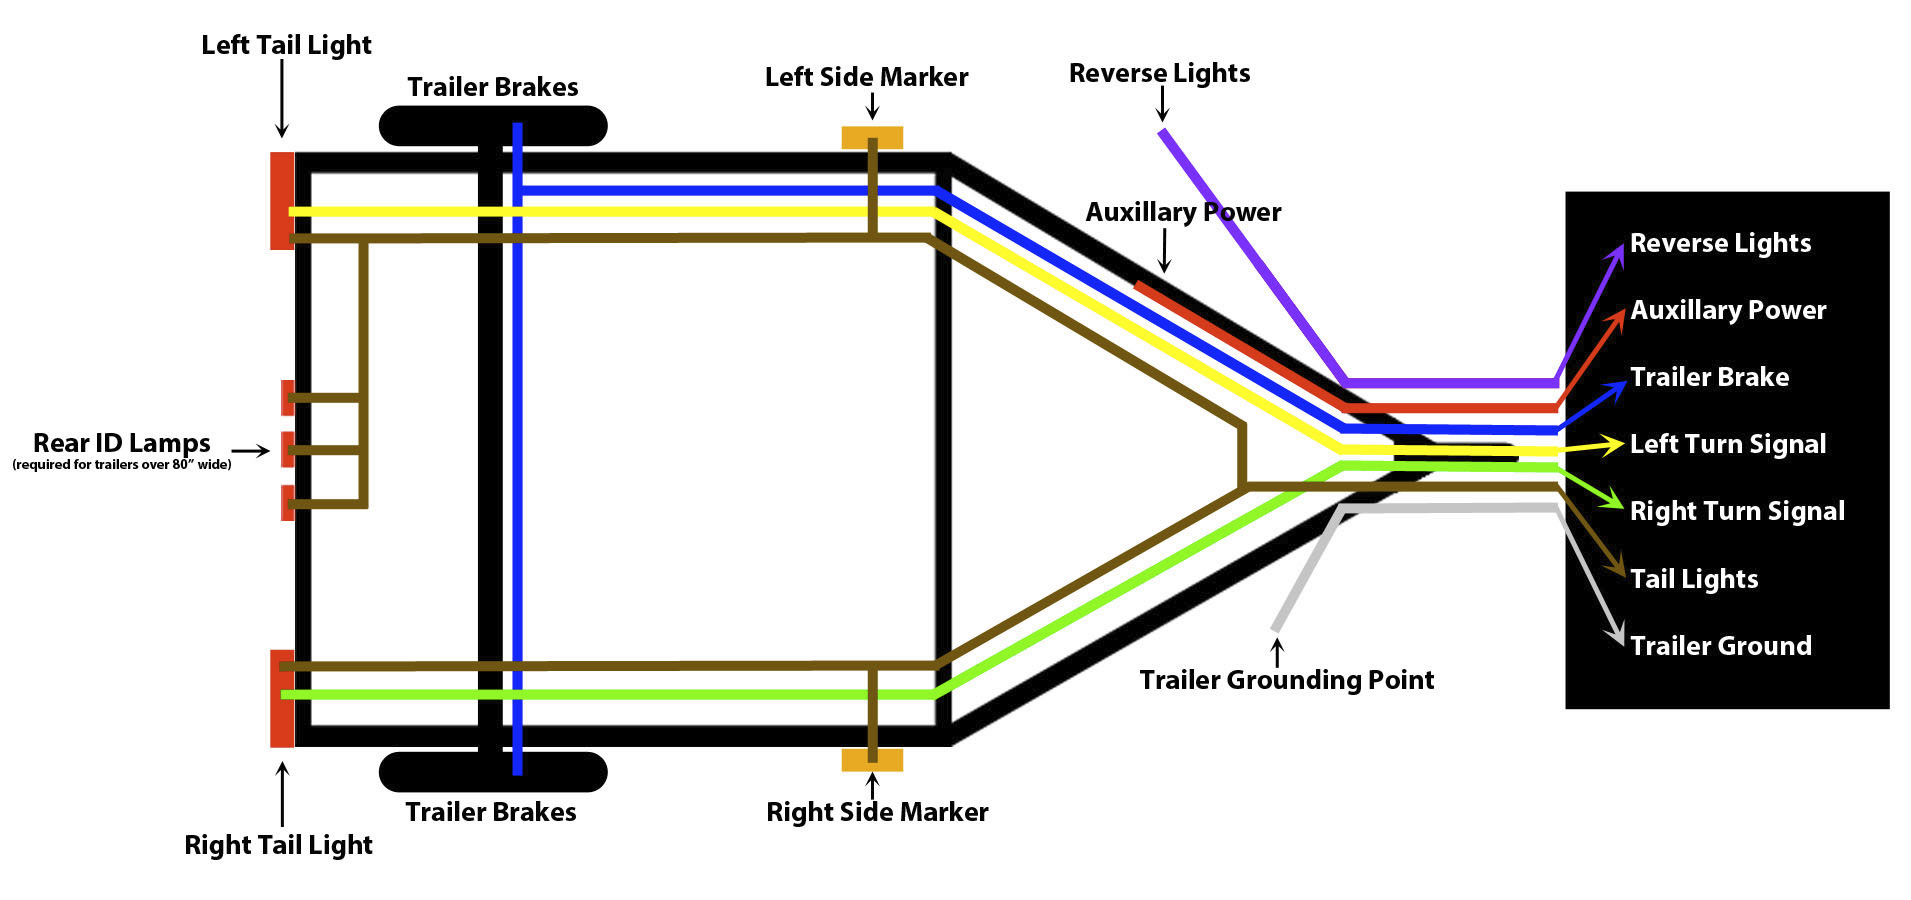 How To Wire Trailer Lights - Trailer Wiring Guide & Videos - Basic Trailer Light Wiring Diagram